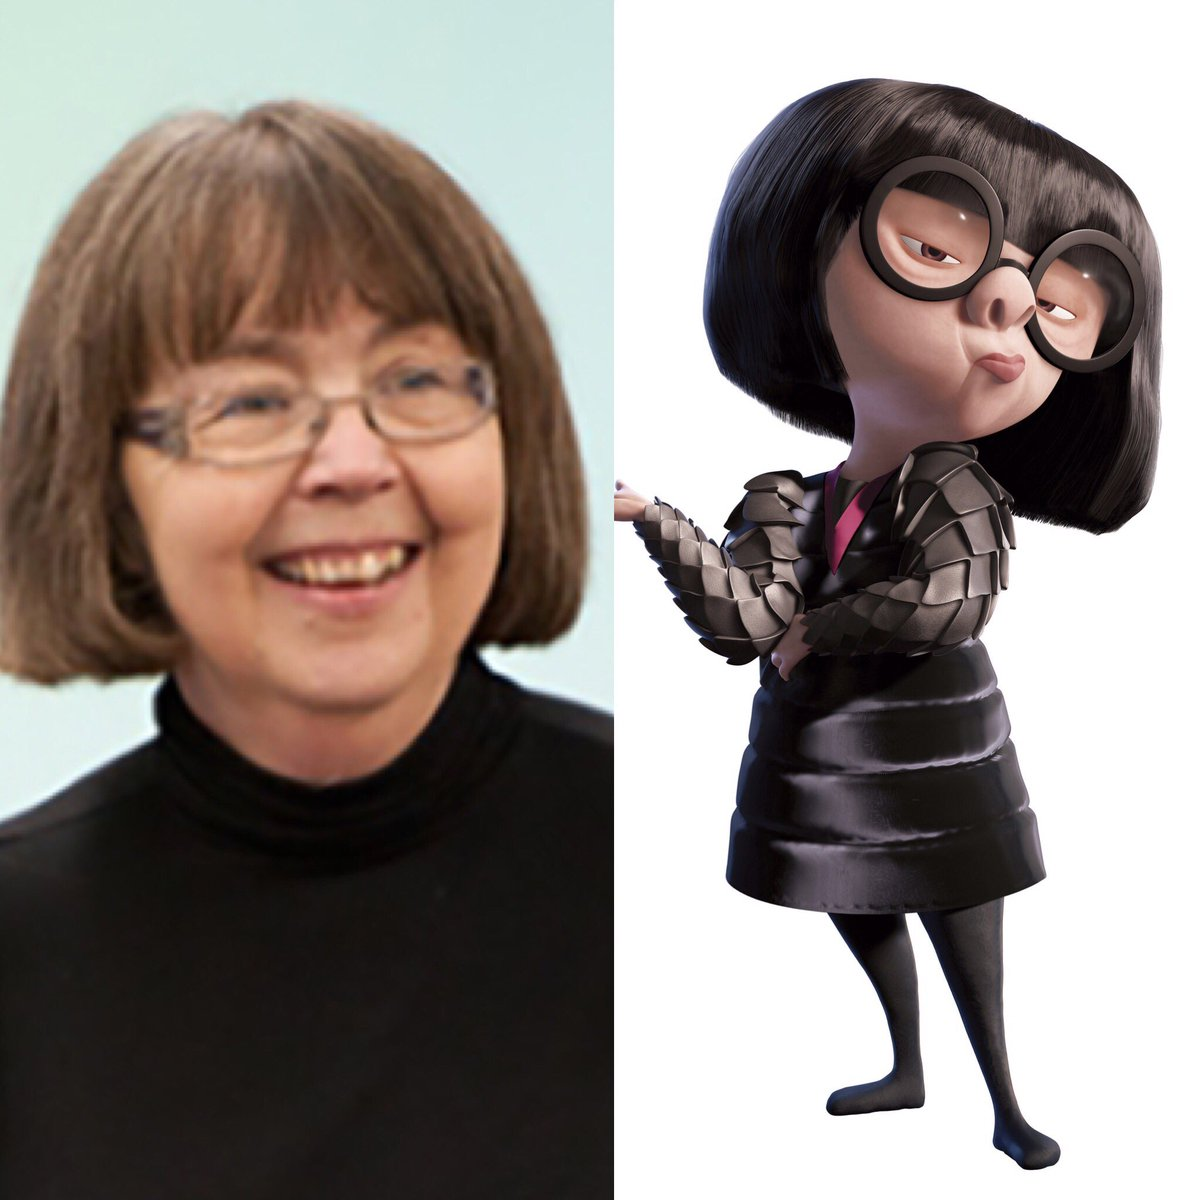 Torrey Appel On Twitter My Advisor Wants To Be The Costume Designer From The Incredibles So Badly